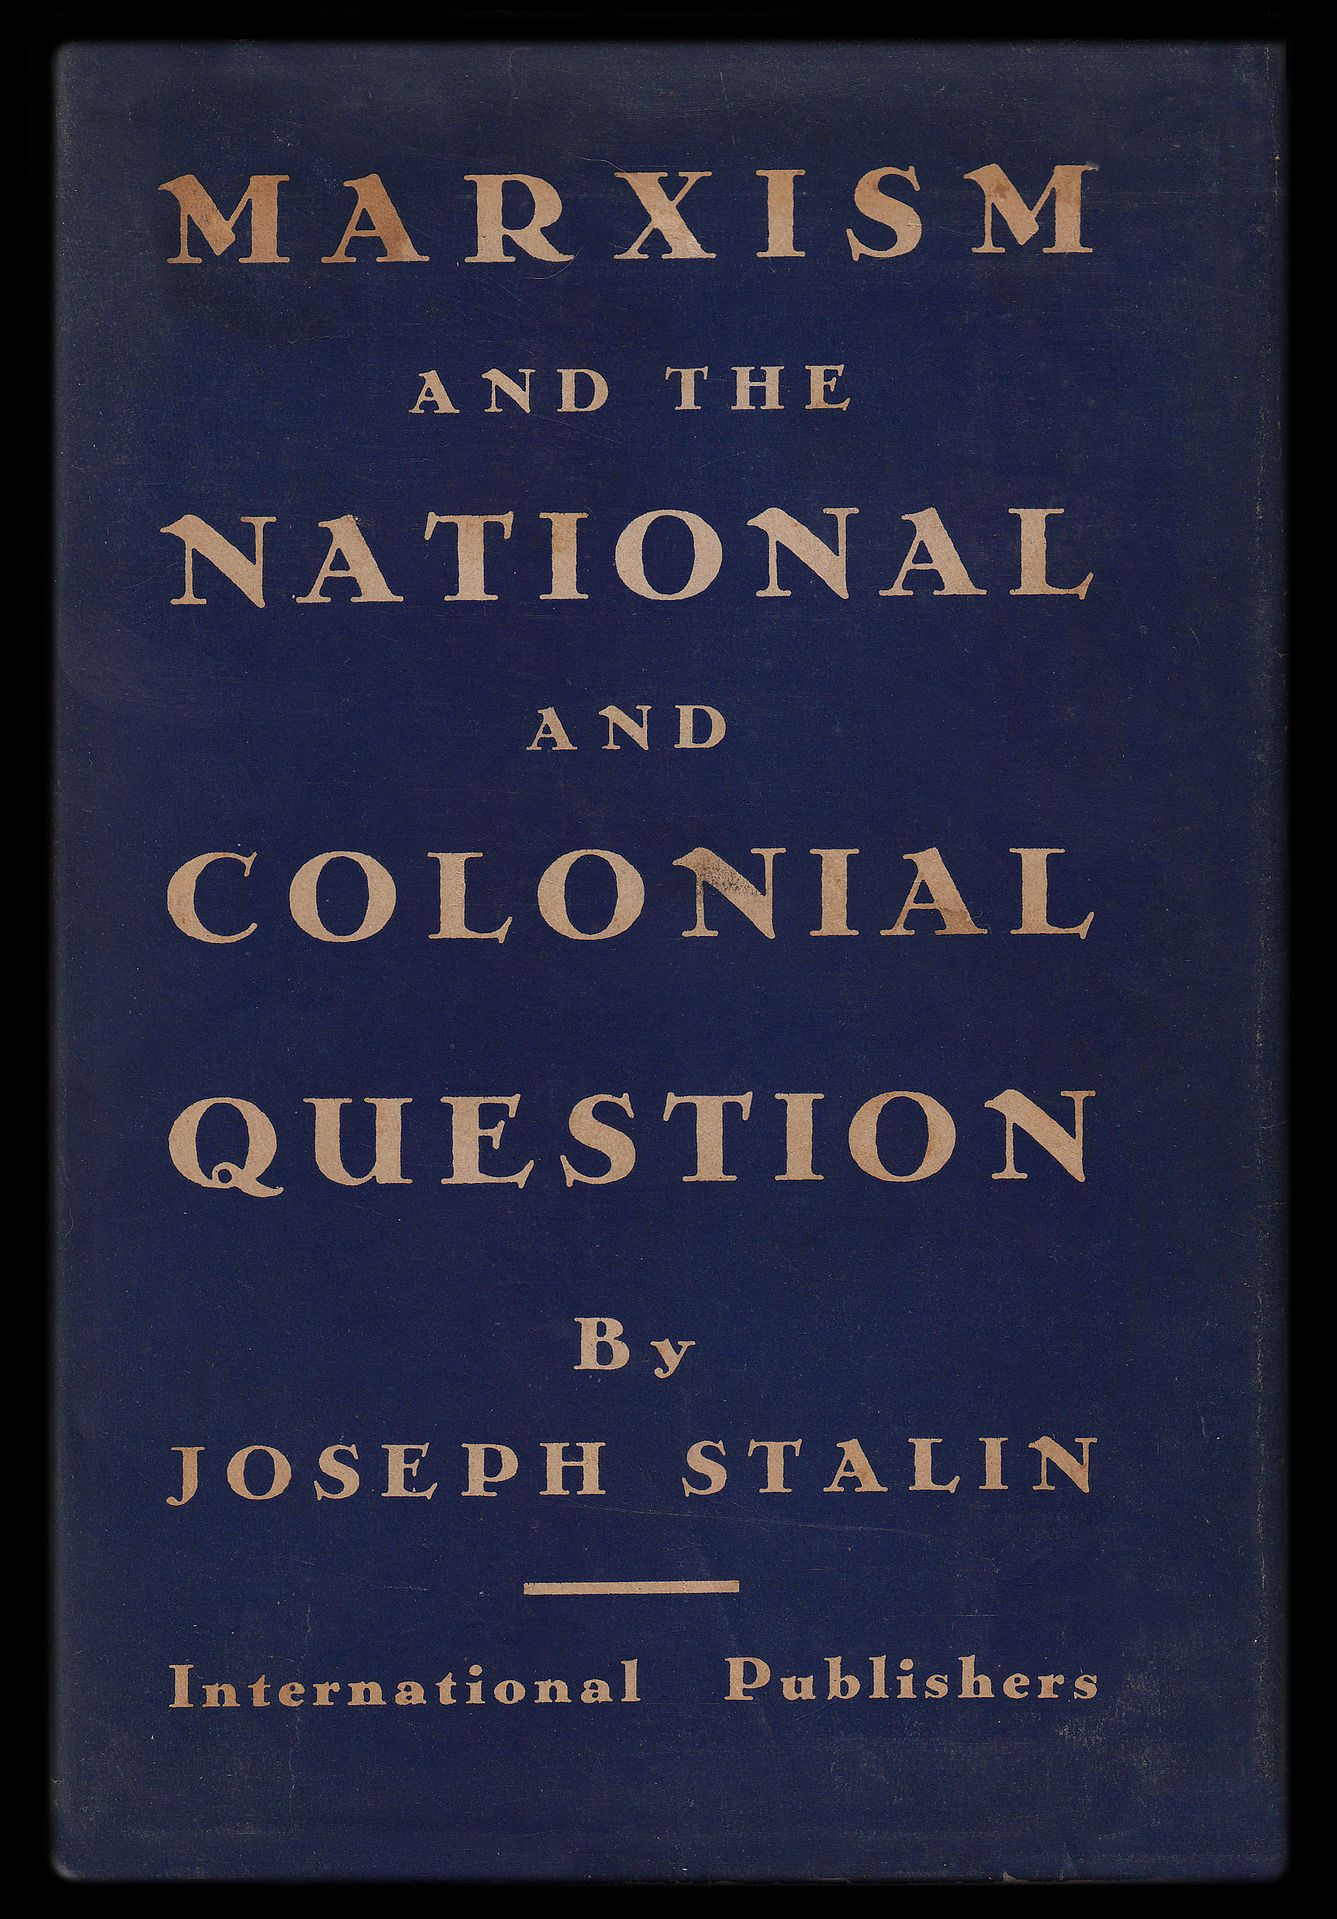 Marxism And The National Question Was Completed Late In